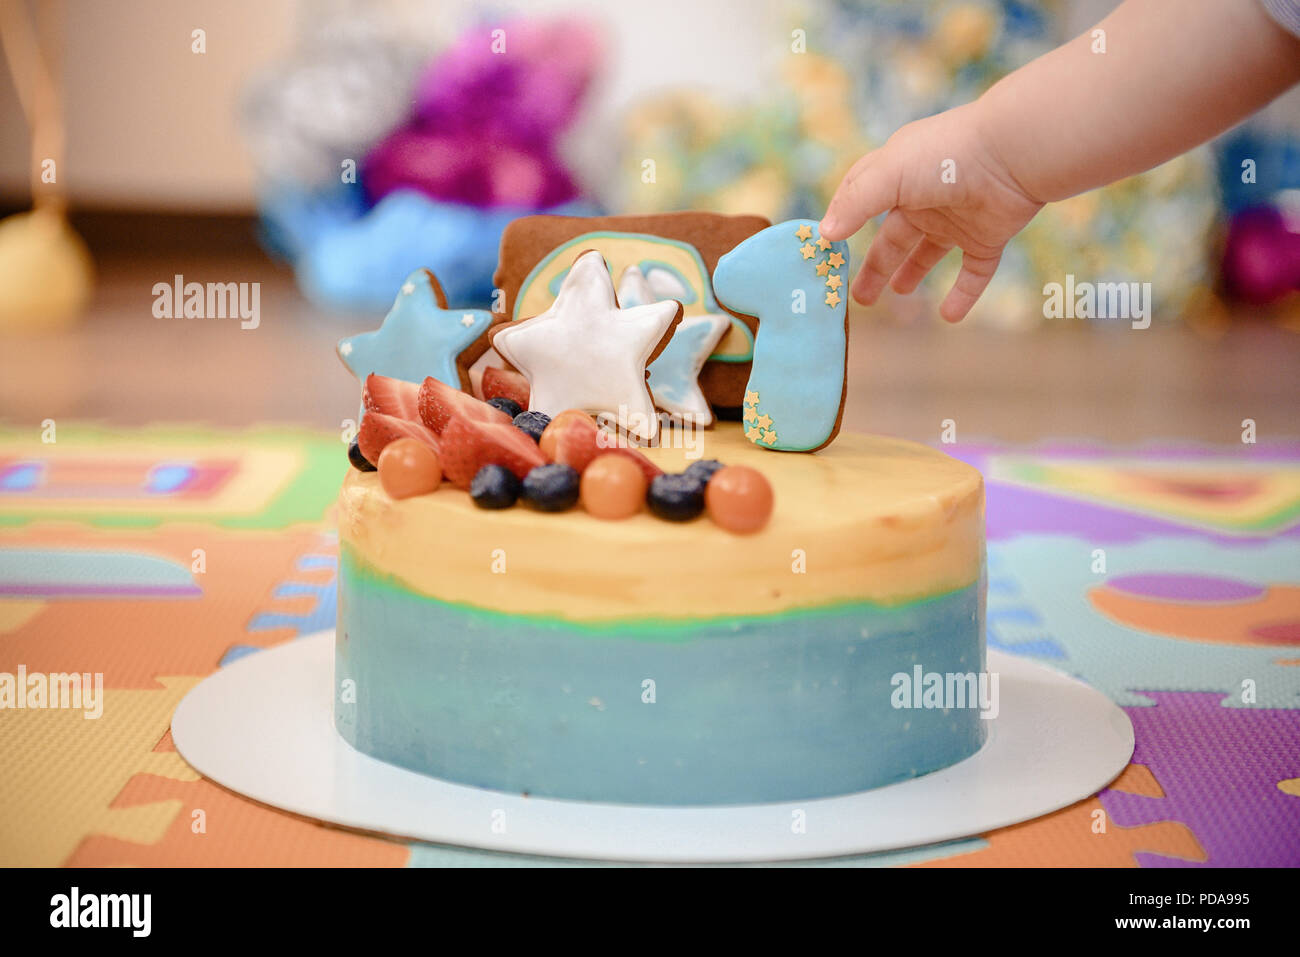 Swell Details Of A First Year Birthday Cake In Blue For Boy Colorful Birthday Cards Printable Inklcafe Filternl